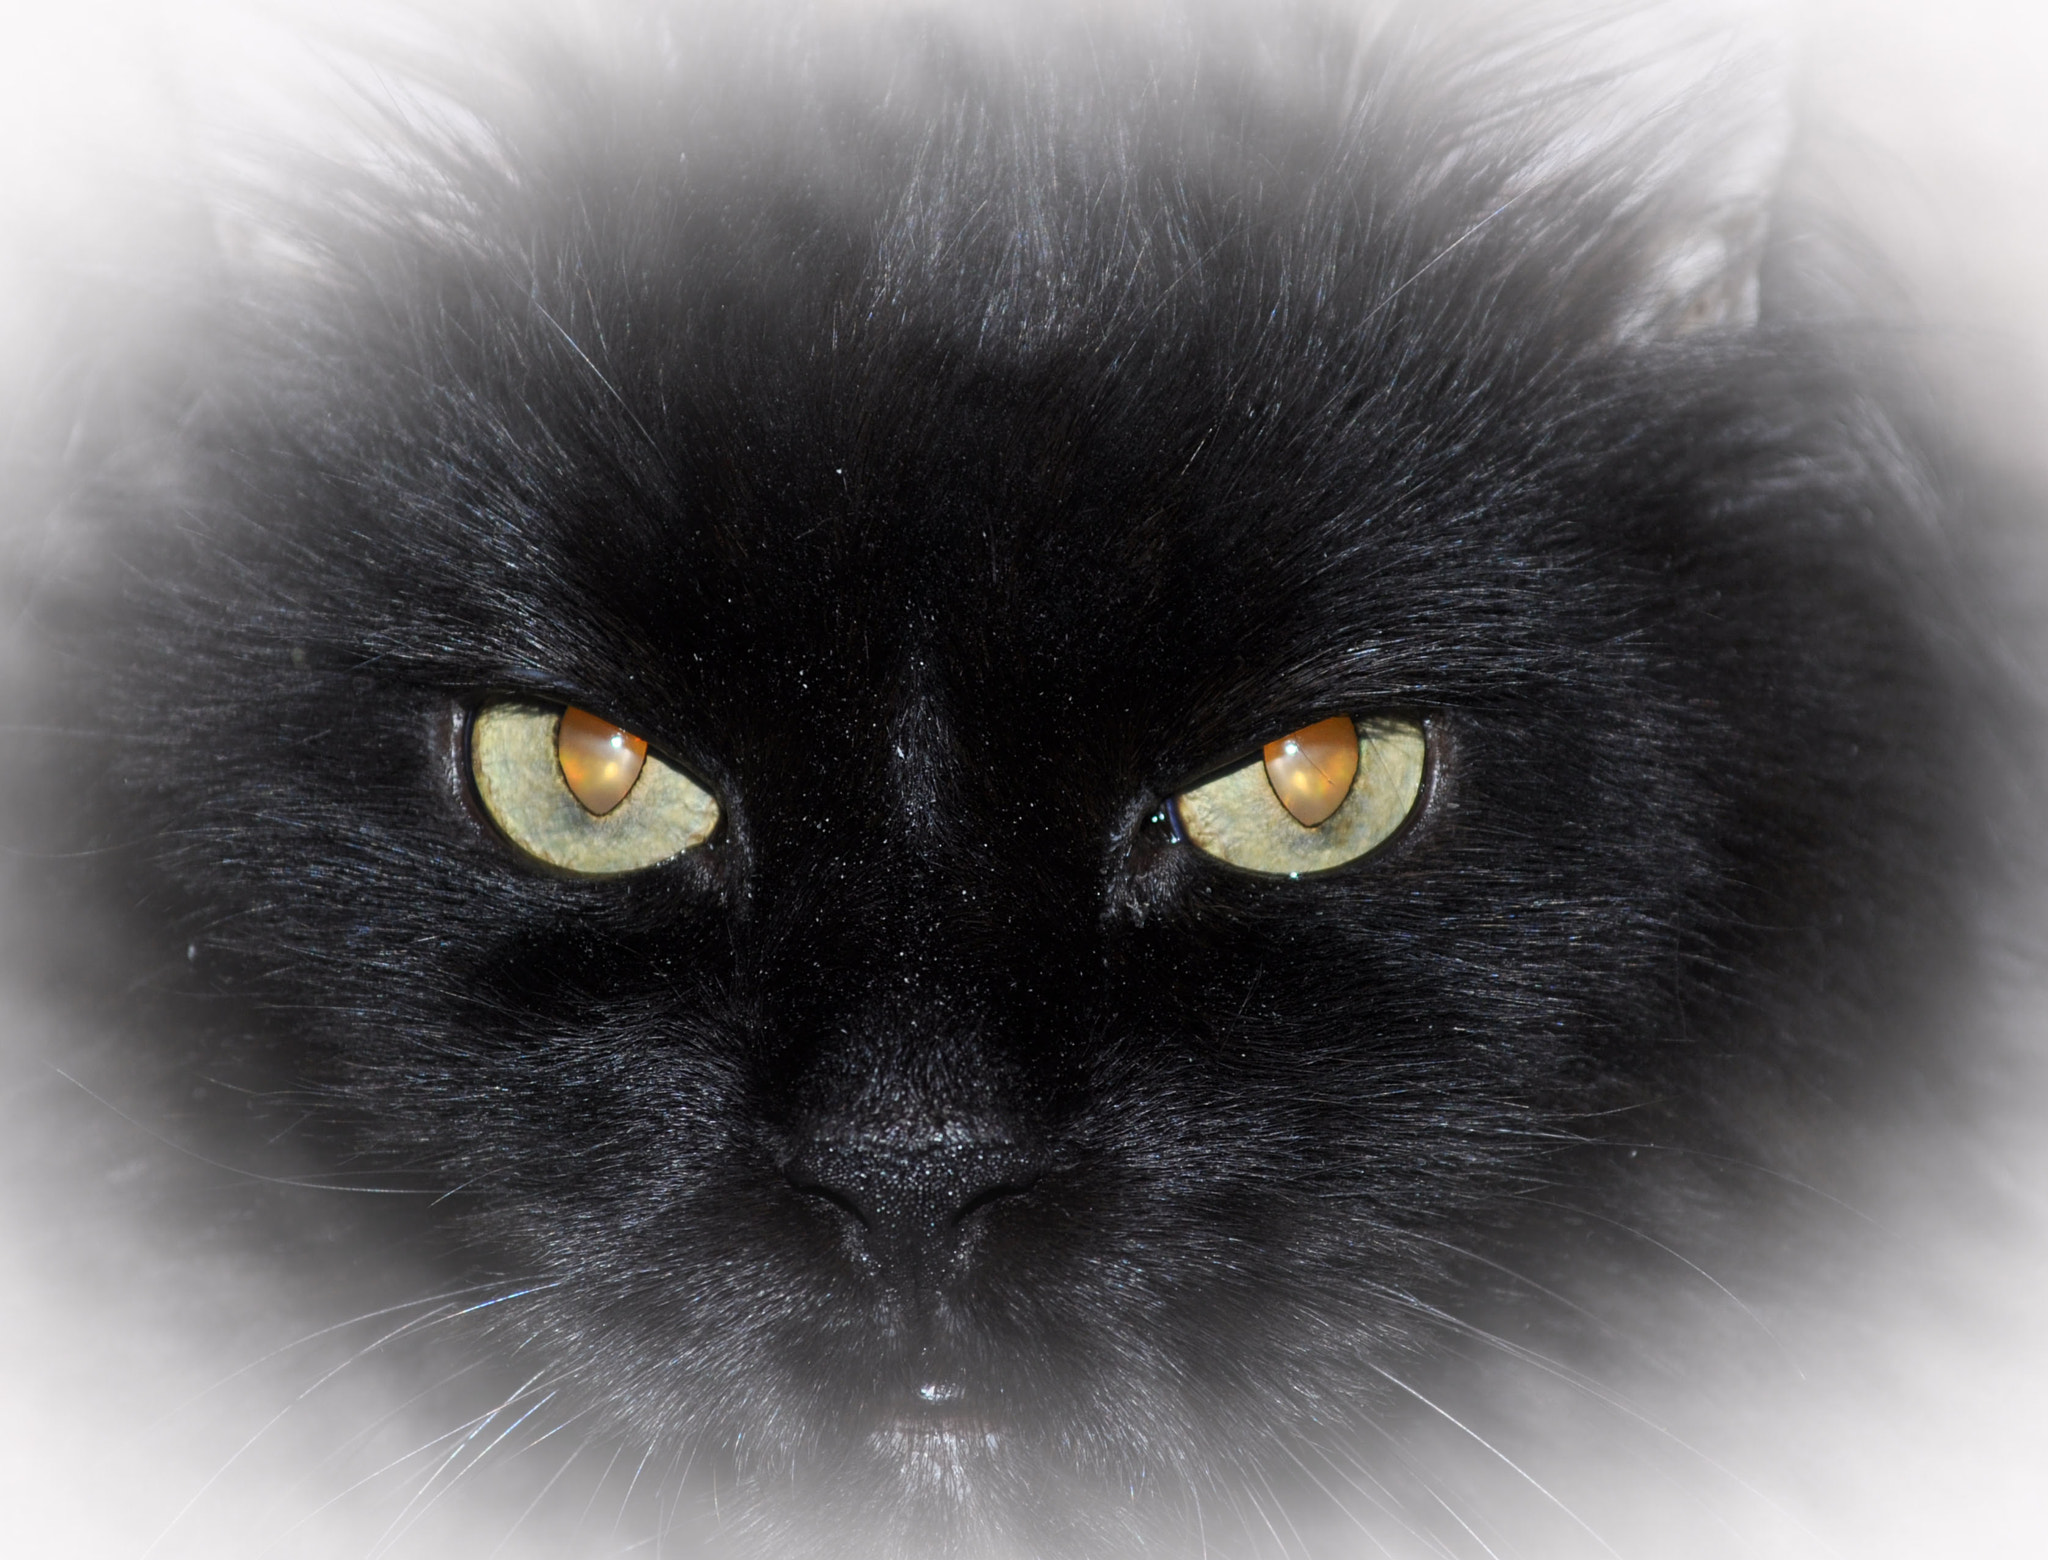 Photograph The Eyes Of Truffles by Mark Luftig on 500px